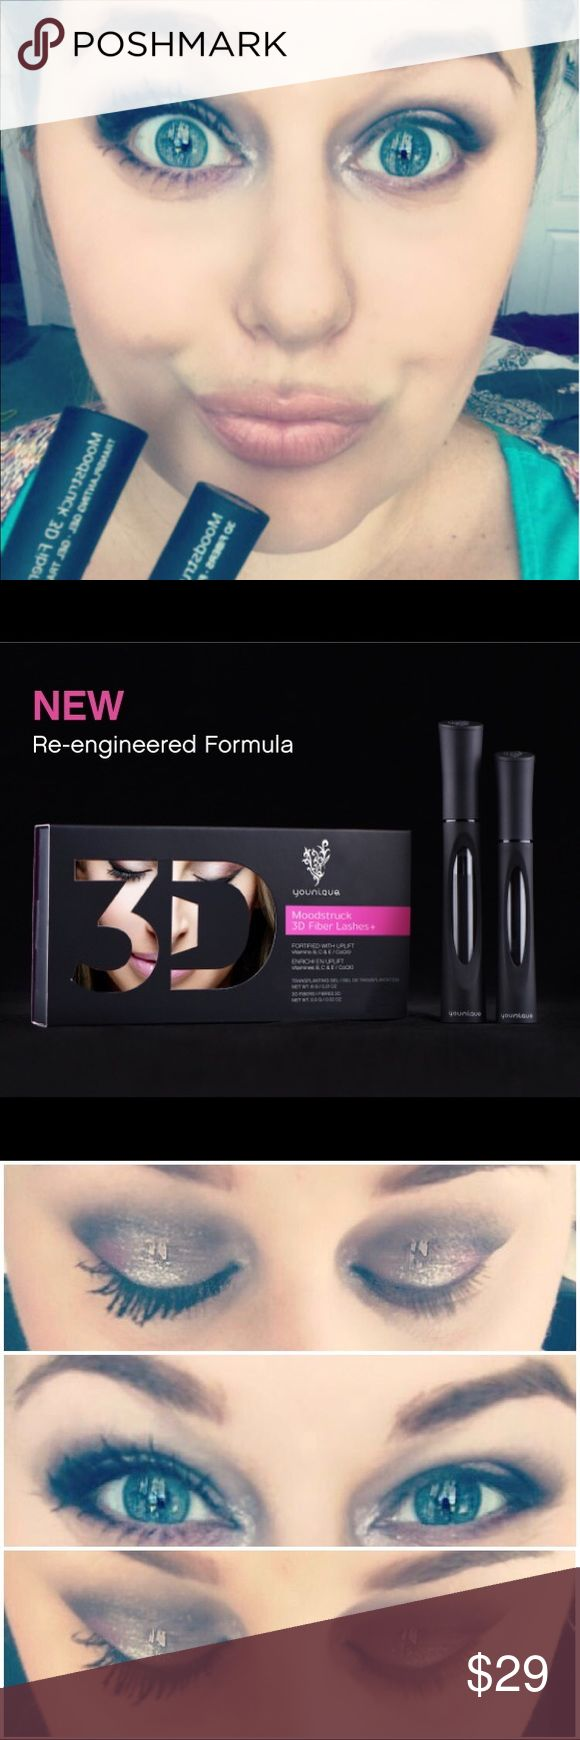 Younique 3D FiberLash+ Mascara Moodstruck 3D Fiber Lashes+ Increase your average lash volume by up to 300%! With a new brush and a fresh look, our proprietary, hypoallergenic patent-pending formula brings life to tired lashes. Its two international patents pending leaves little wonder about why women are talking about which lash enhancer they use. FreshFabFace.com Makeup Mascara